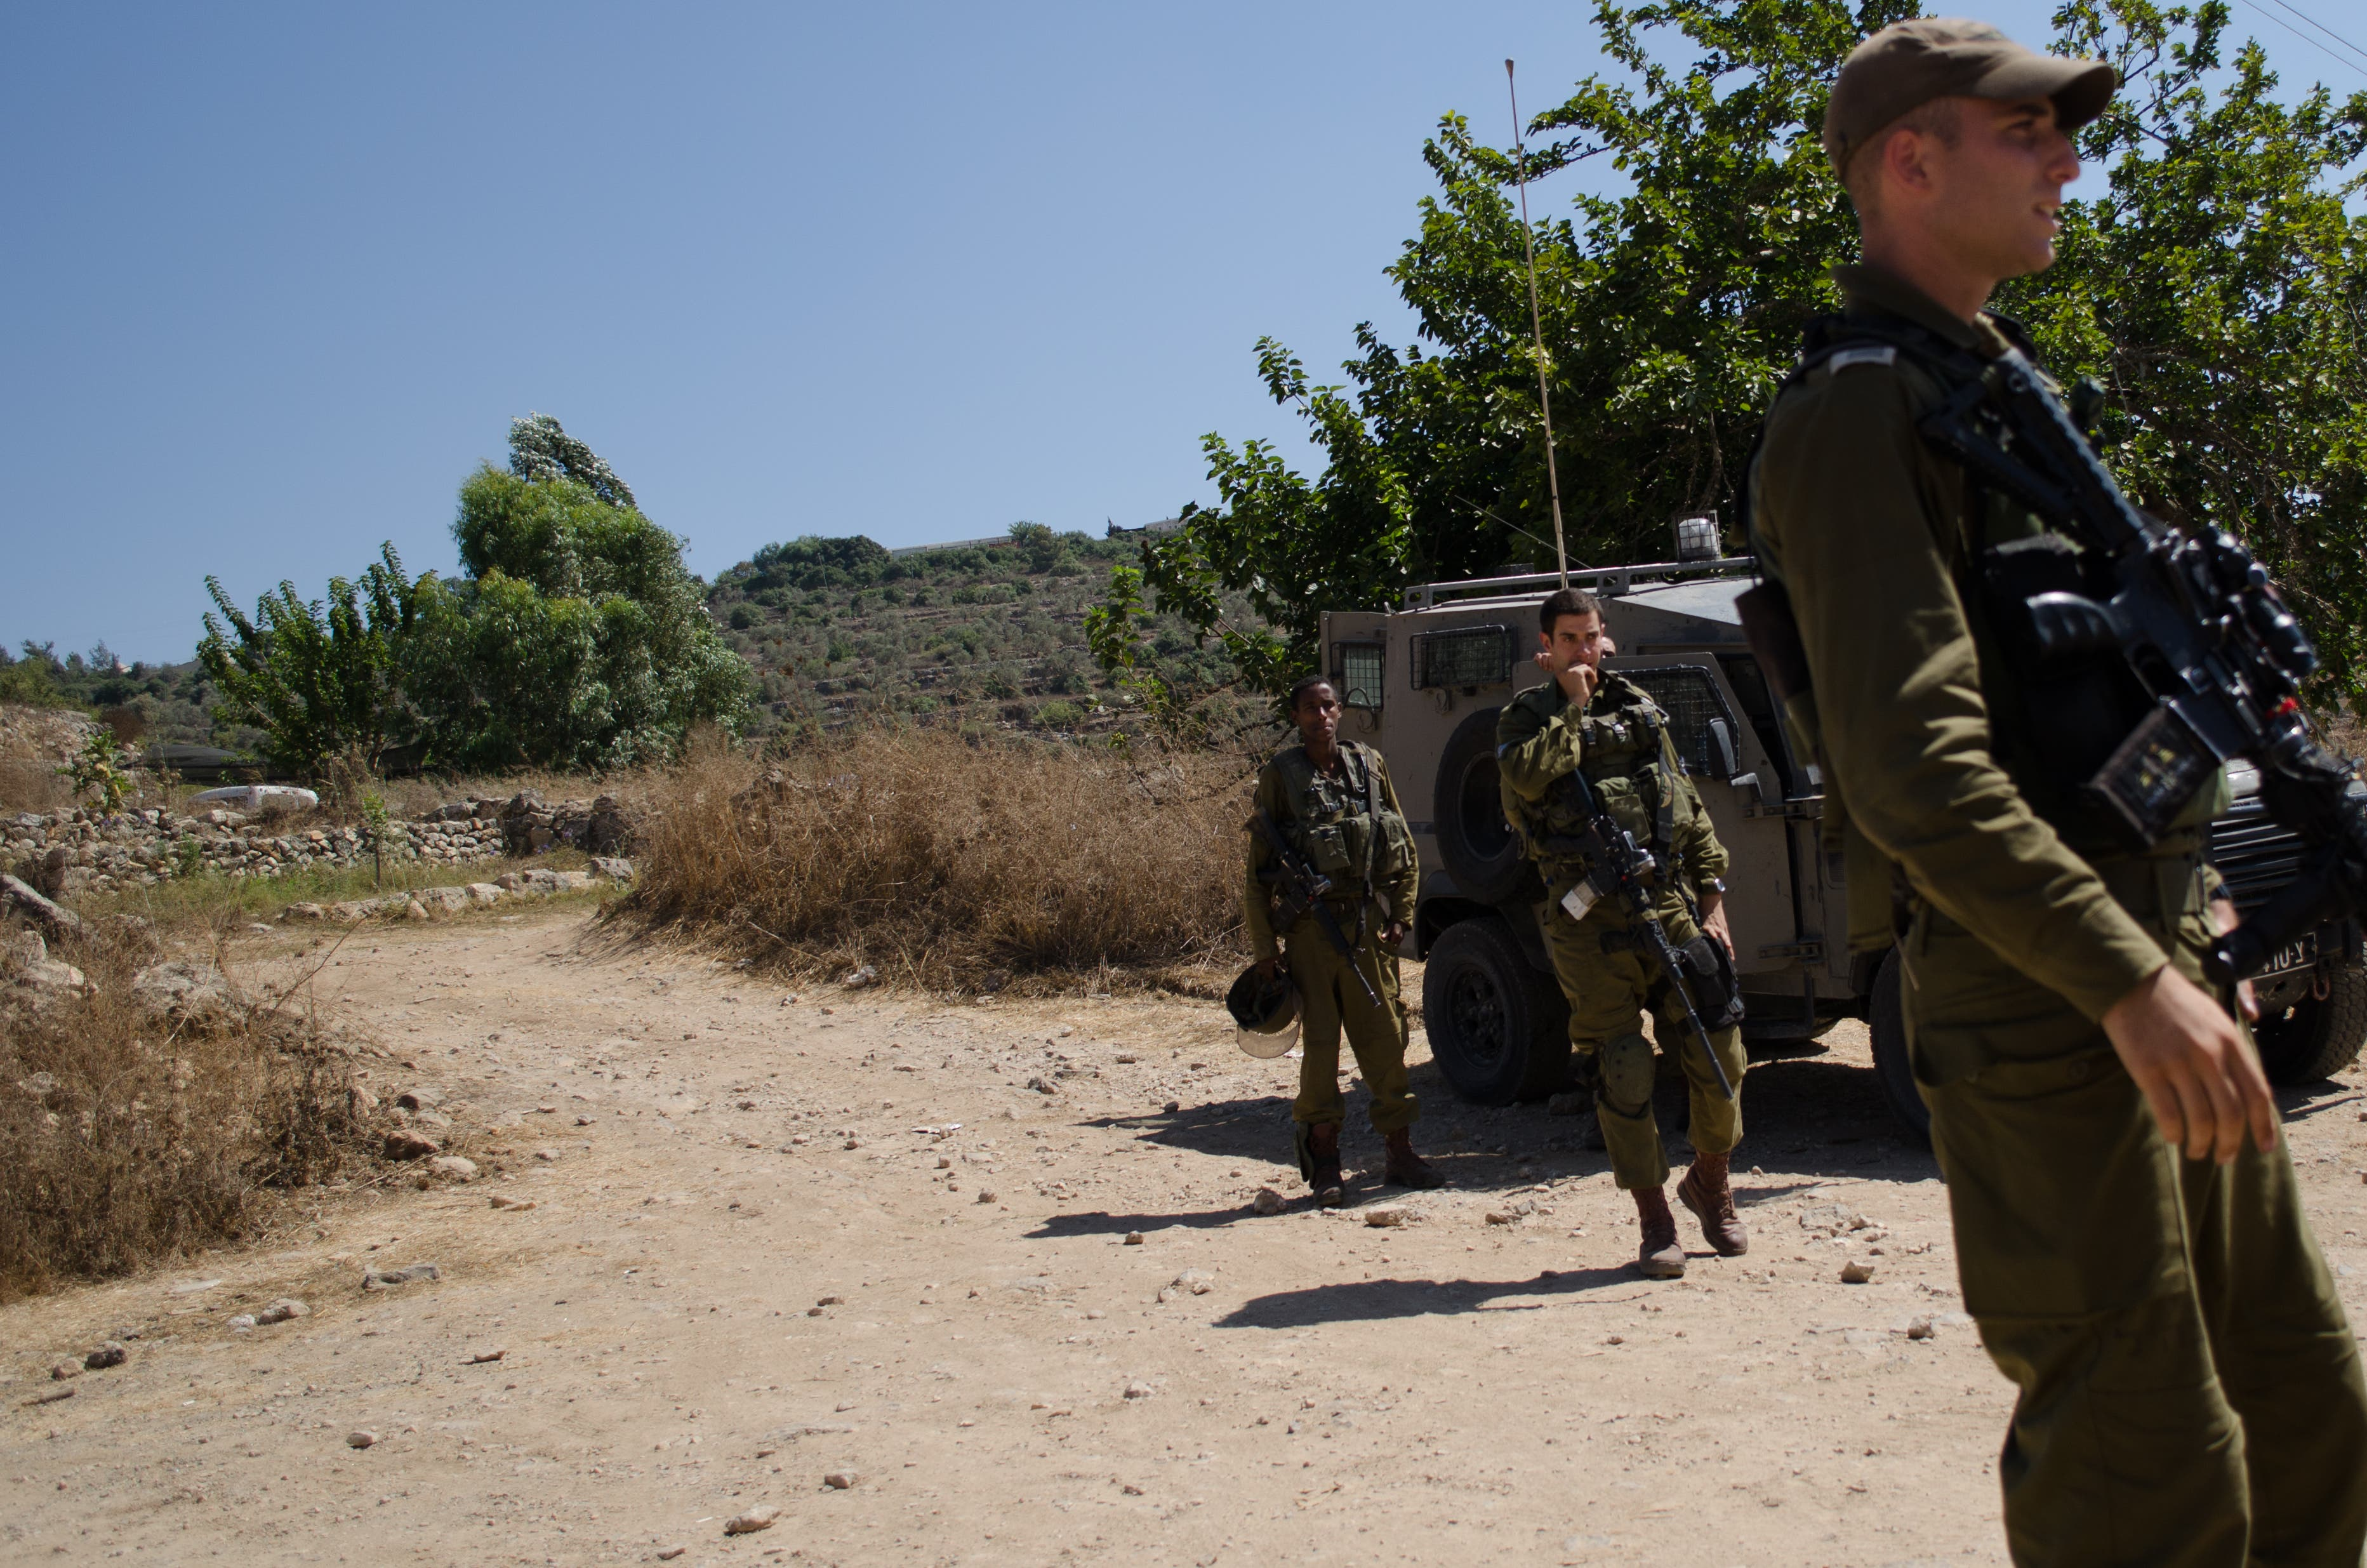 Israeli Defense Forces stand guard in front of the entrance to Ein al-Qaws Spring, which previously served as Nabi Salih's water source for agriculture. Since the spring's seizure, crops in the village have have been dying. (Albawaba/J. Zach Hollo)